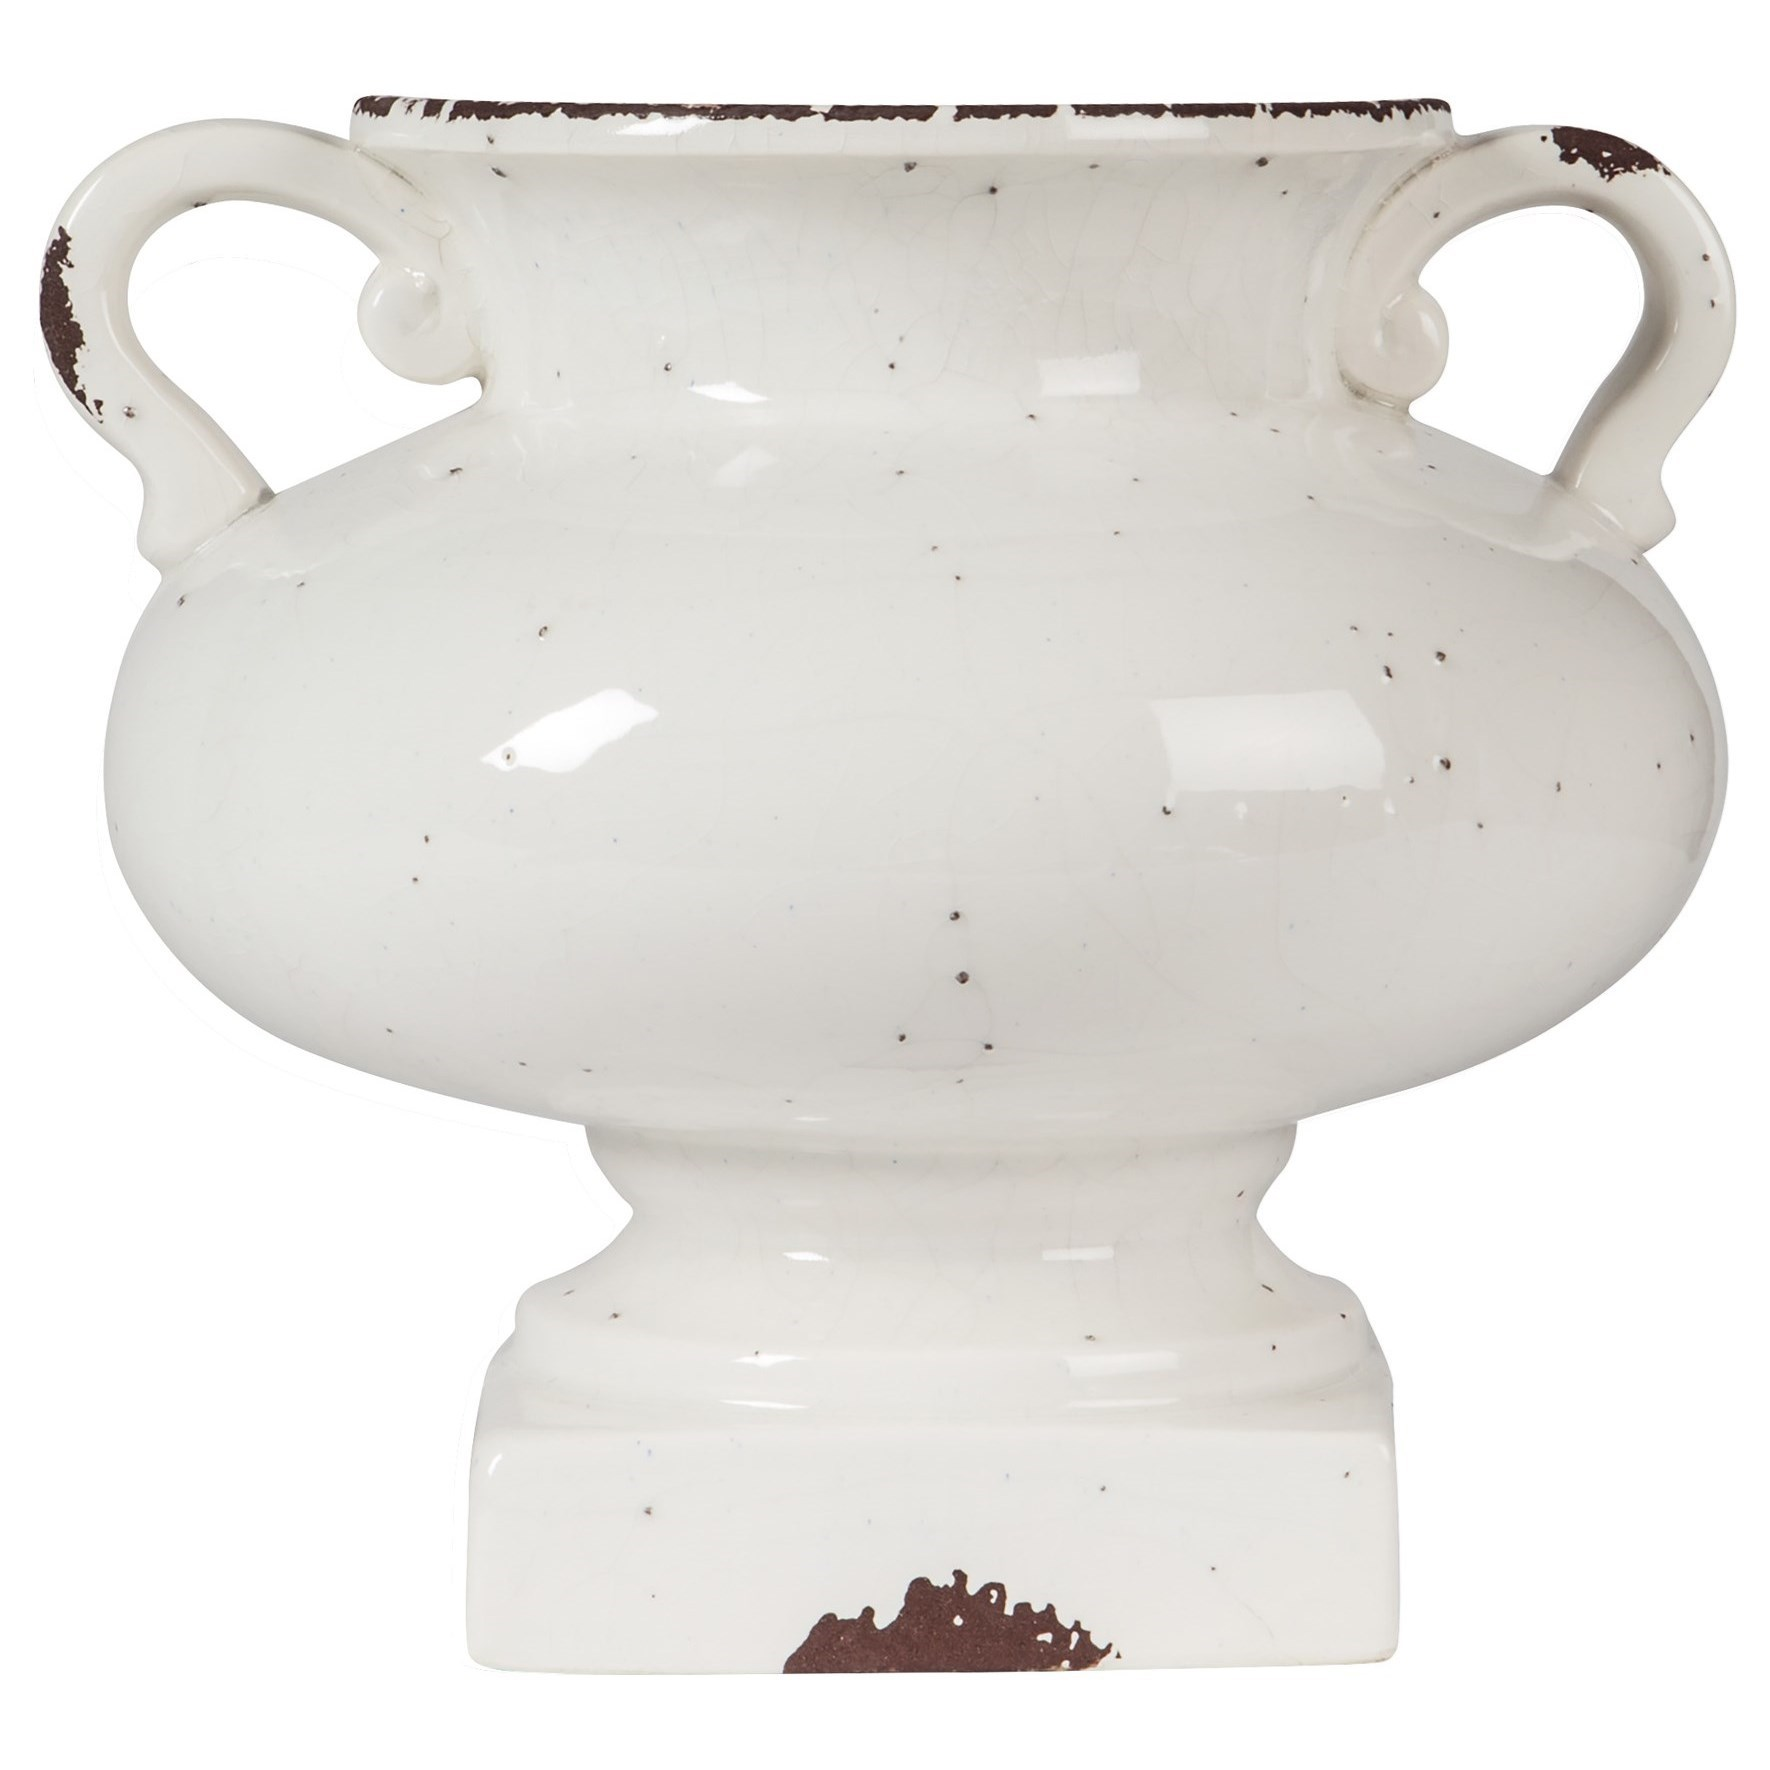 Accents Diedra Antique White Urn by Signature Design by Ashley at Northeast Factory Direct